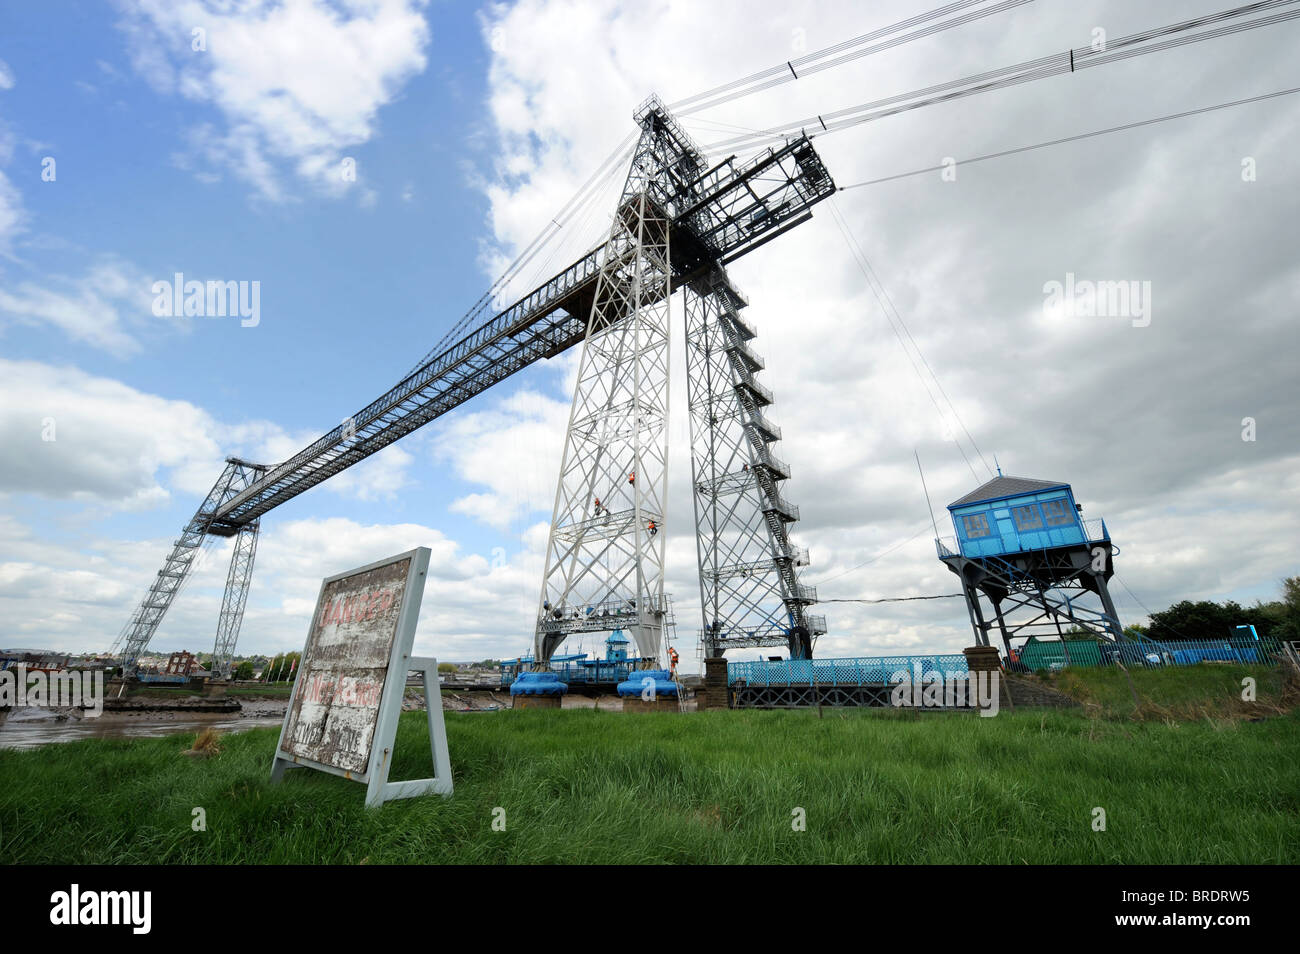 Scaffolders tower cable cables engineers Refurbishment The Newport Transporter Bridge South Wales crossing span Stock Photo